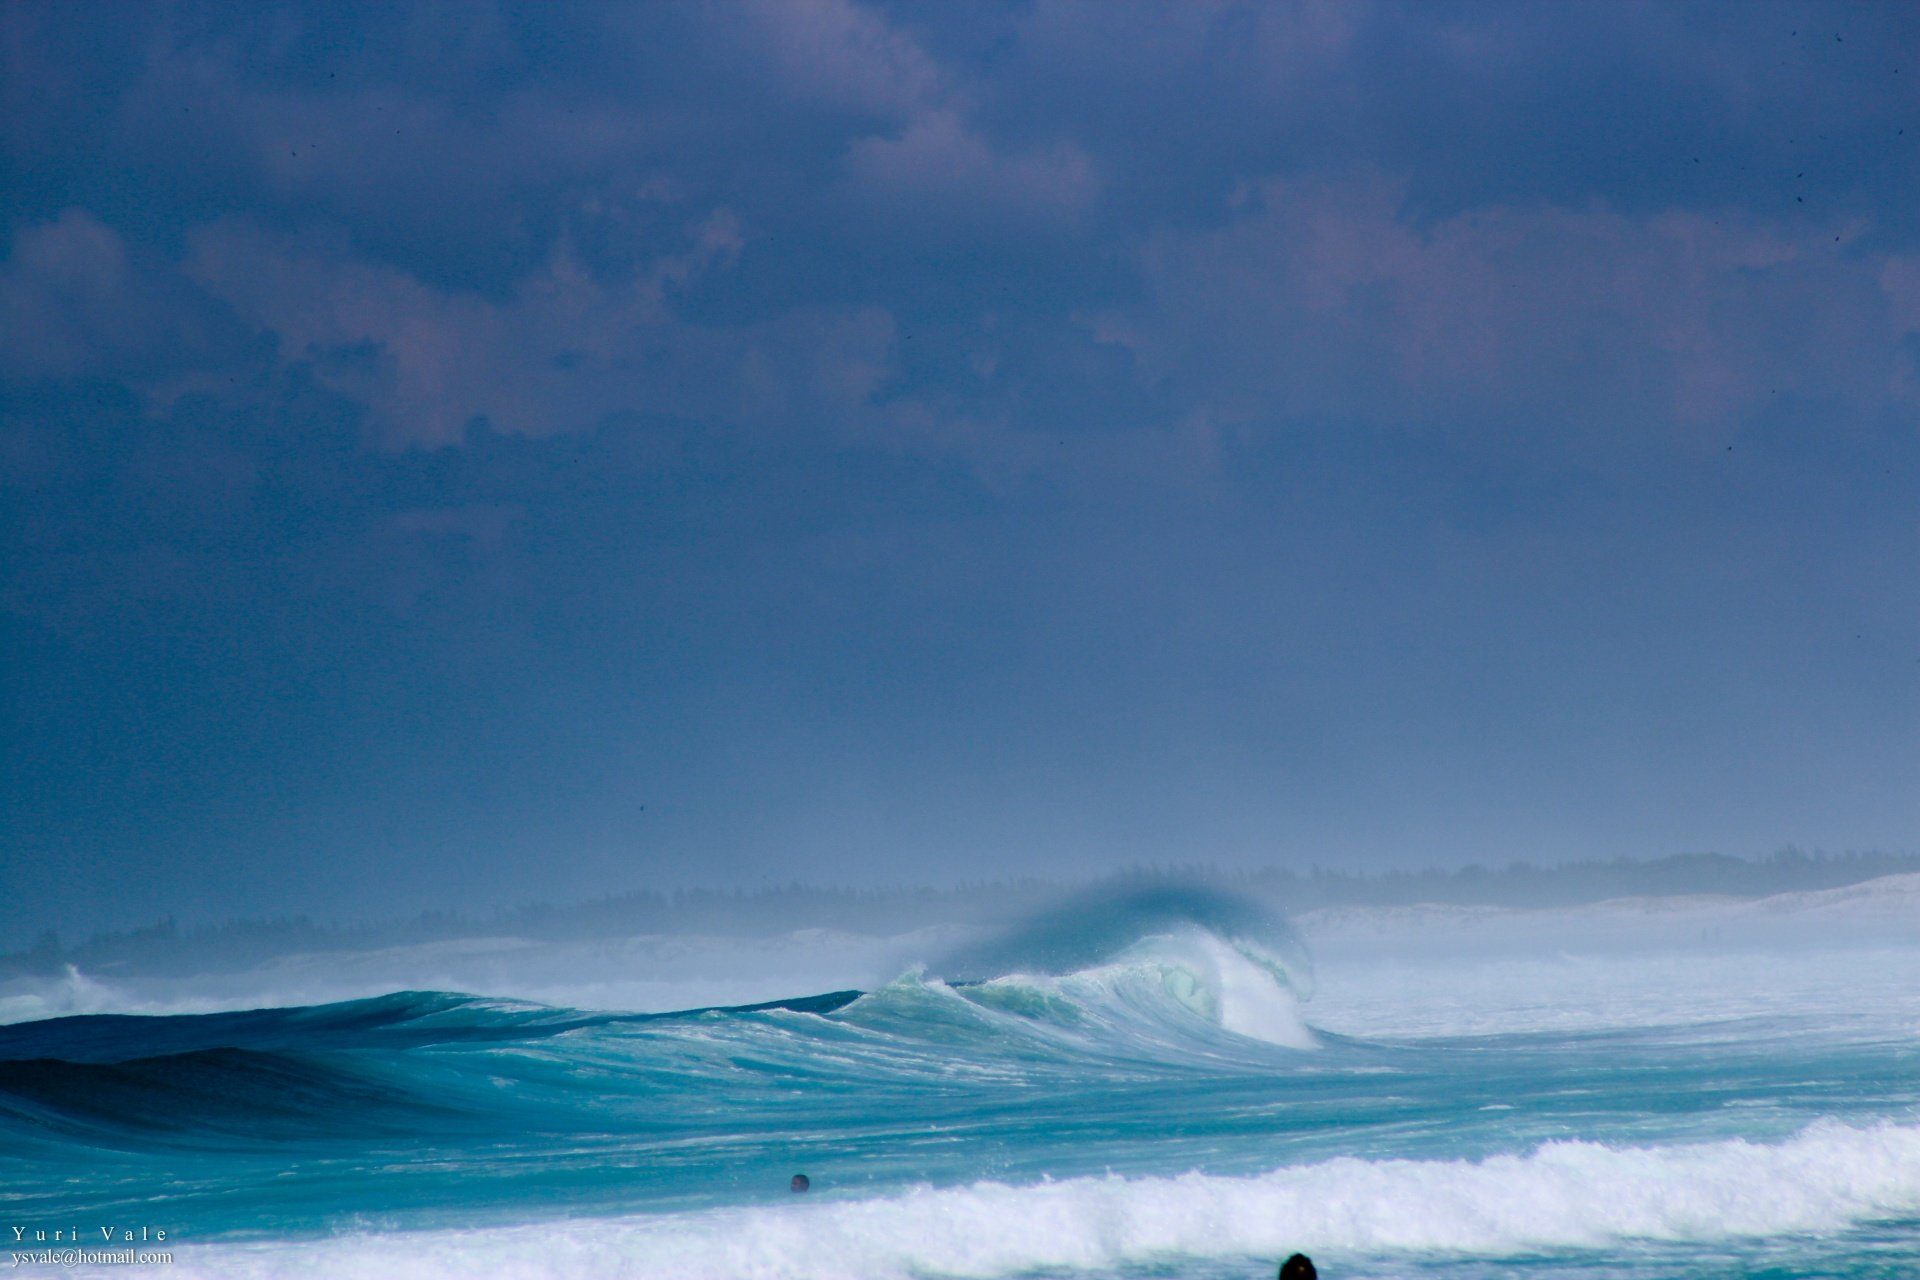 Yuri Vale's photo of Praia Grande - Brazil